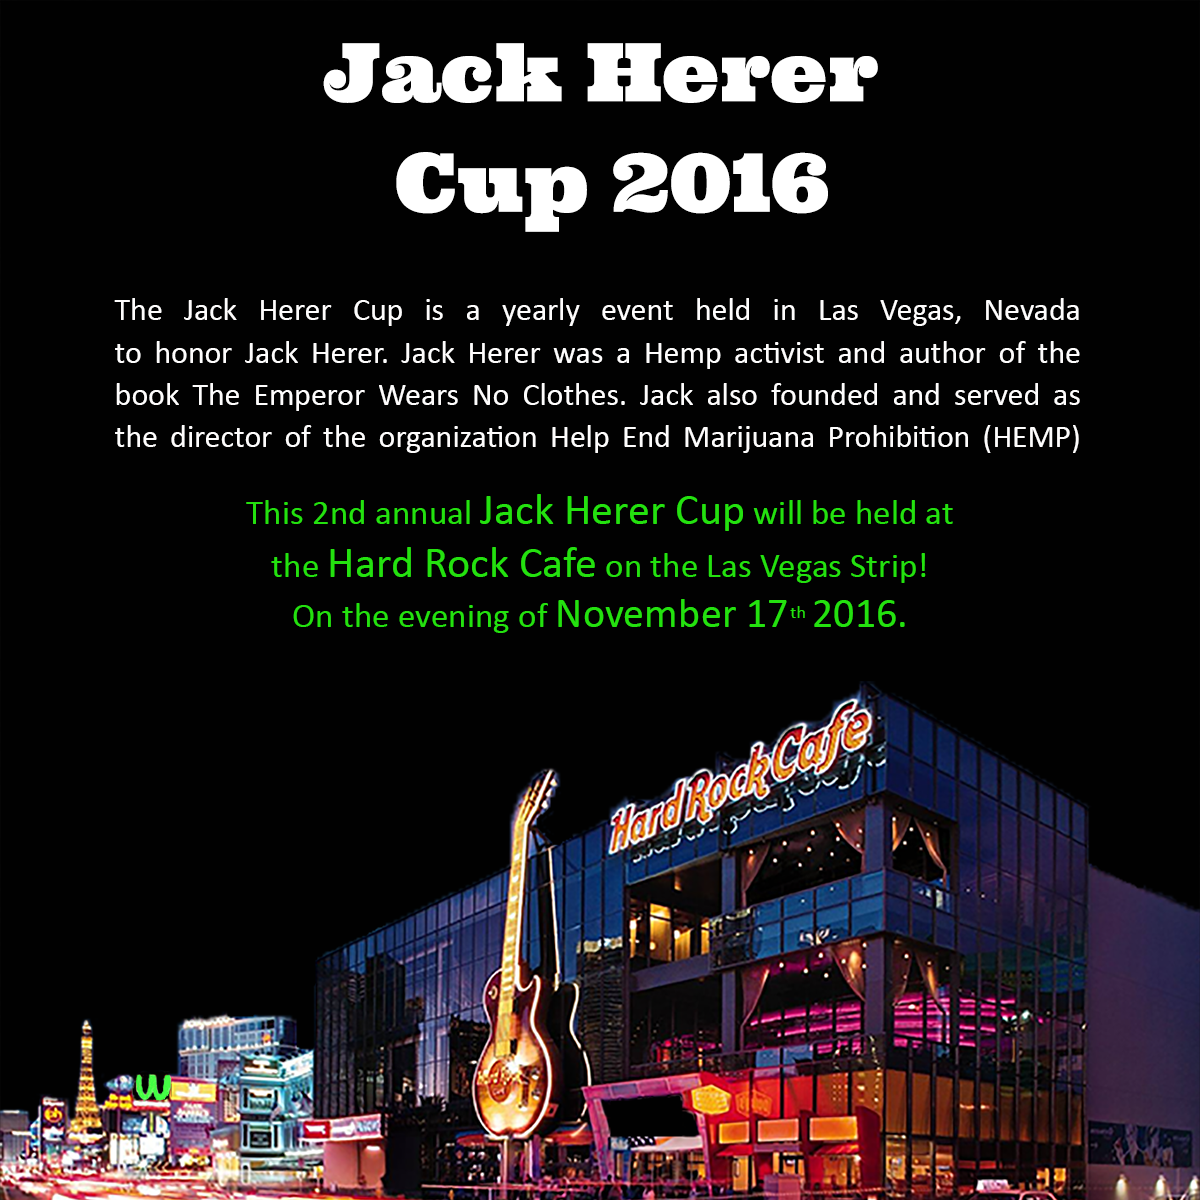 The Jack Herer Cup, Las Vegas, Nov 17th 2016